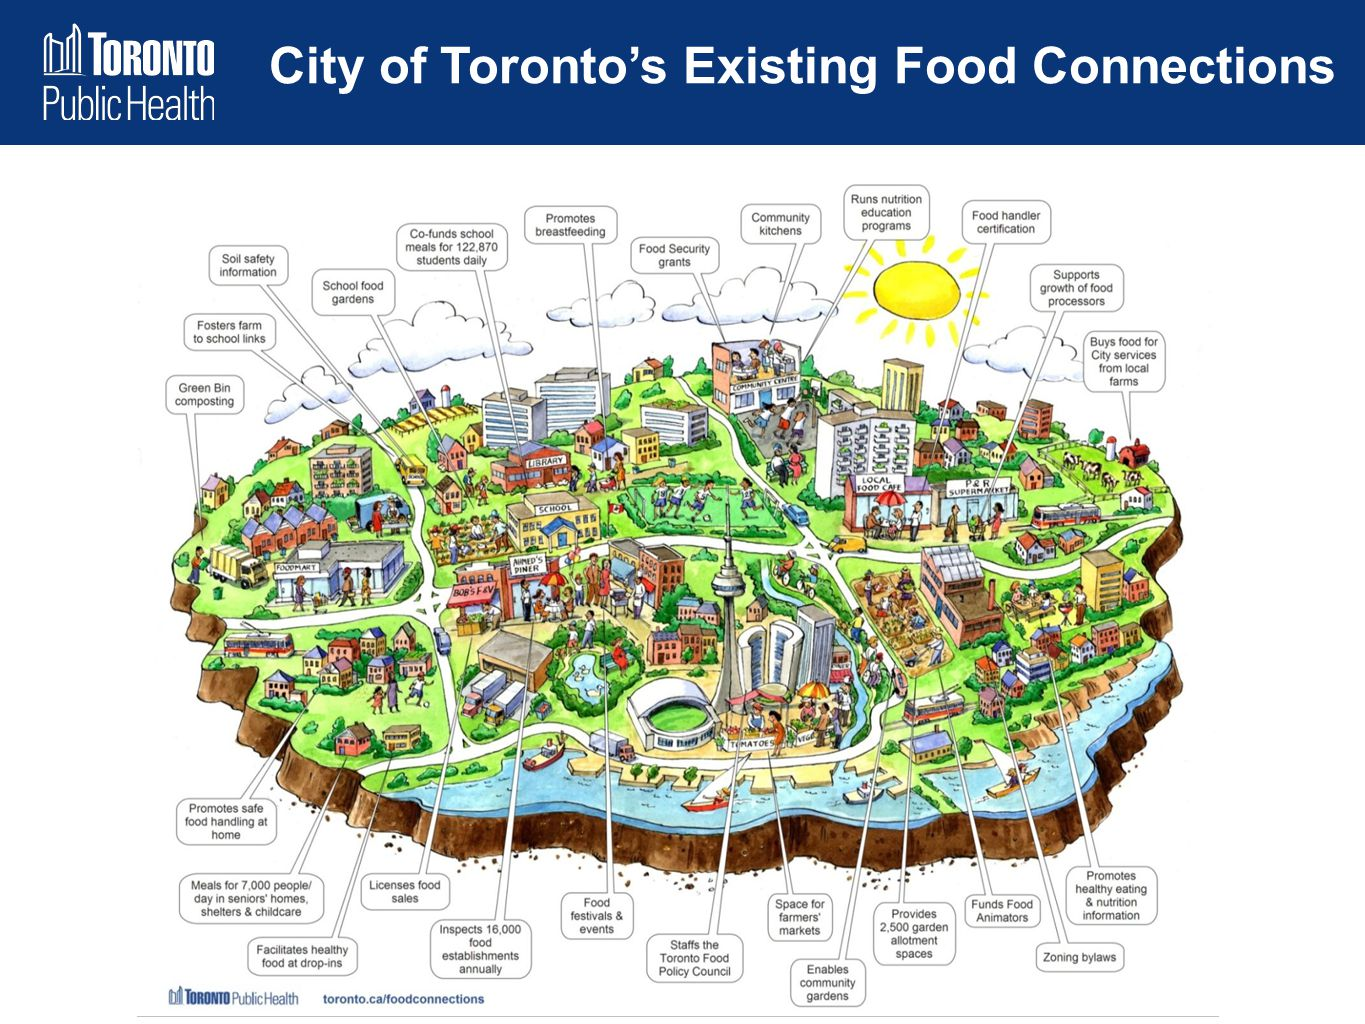 City of Toronto's Existing Food Connections